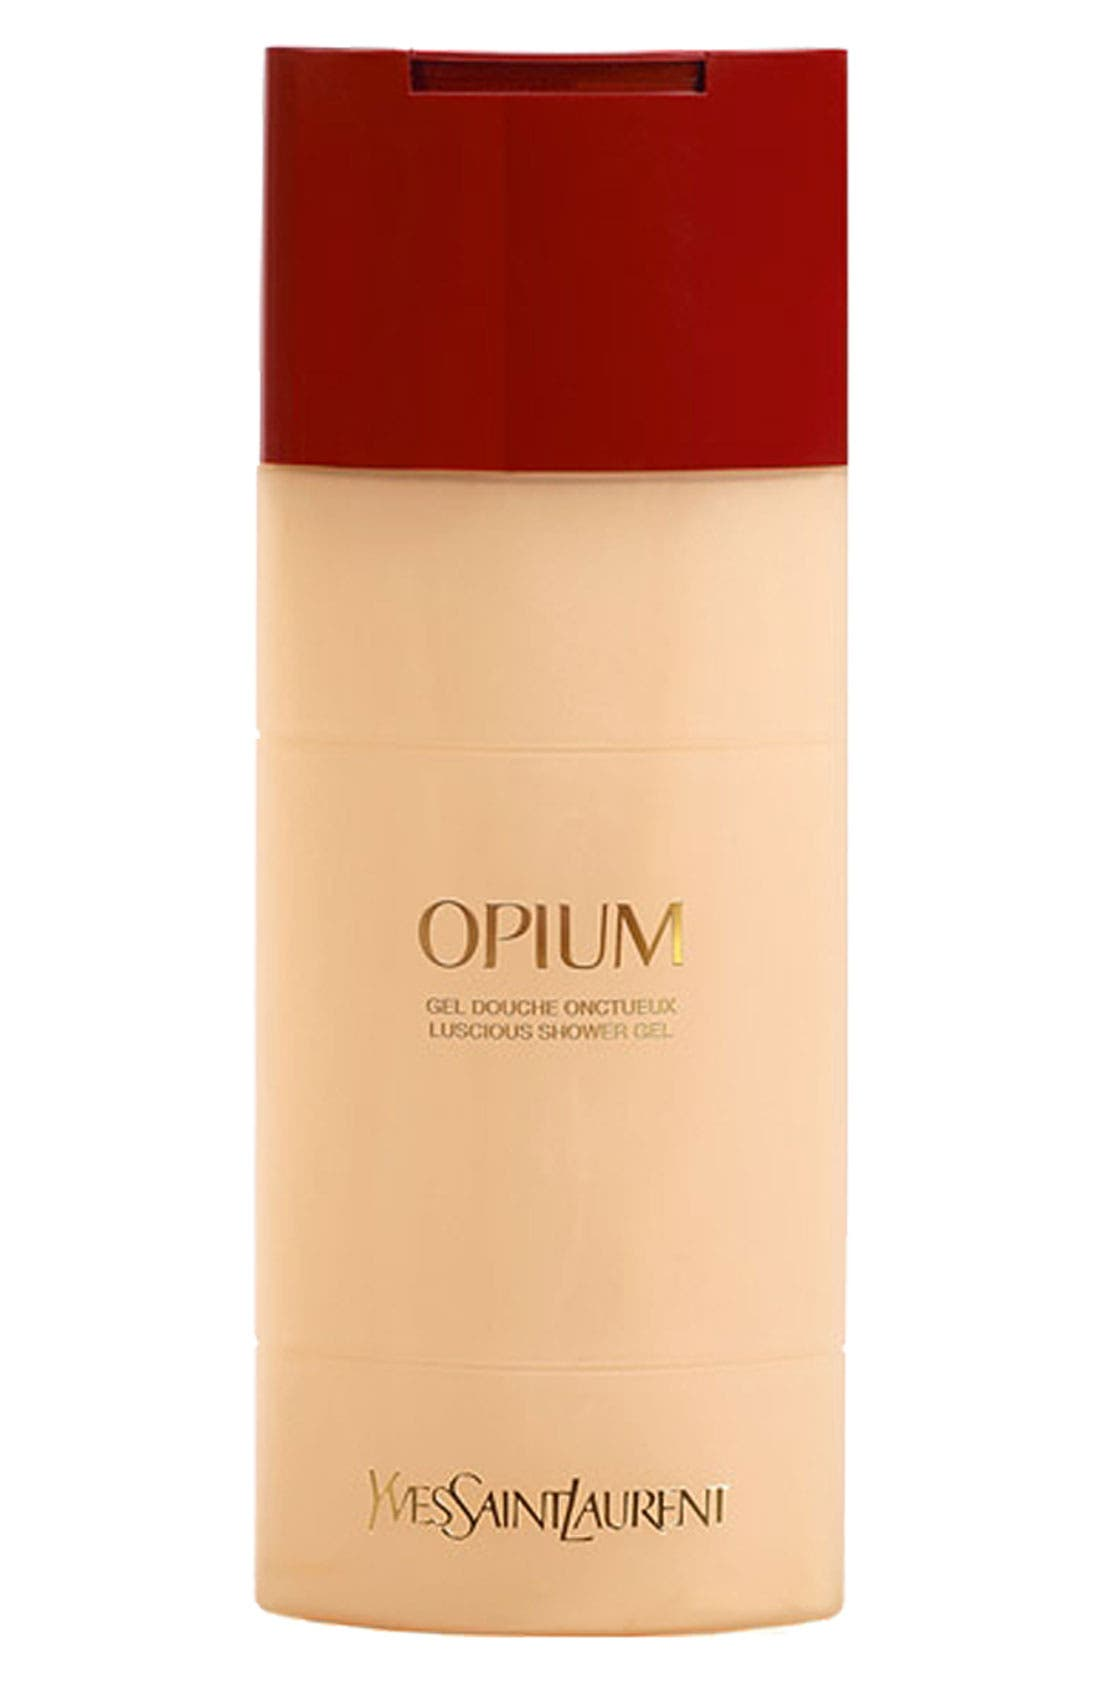 Yves Saint Laurent 'Opium' Luscious Shower Gel